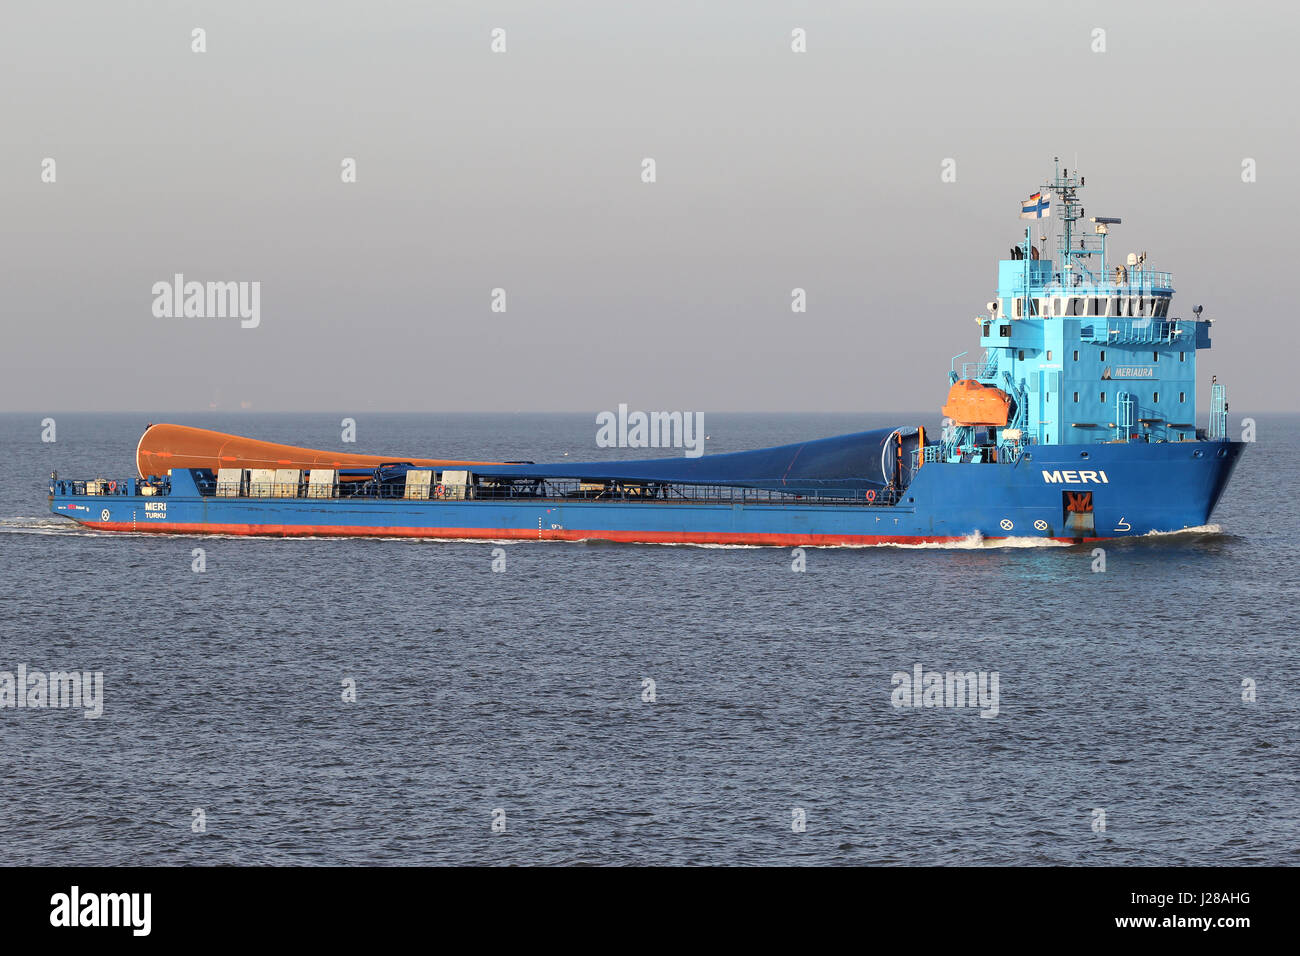 Finnish special purpose vessel MERI on the river Elbe. This ship is known to be the first cargo ship of this size, Stock Photo